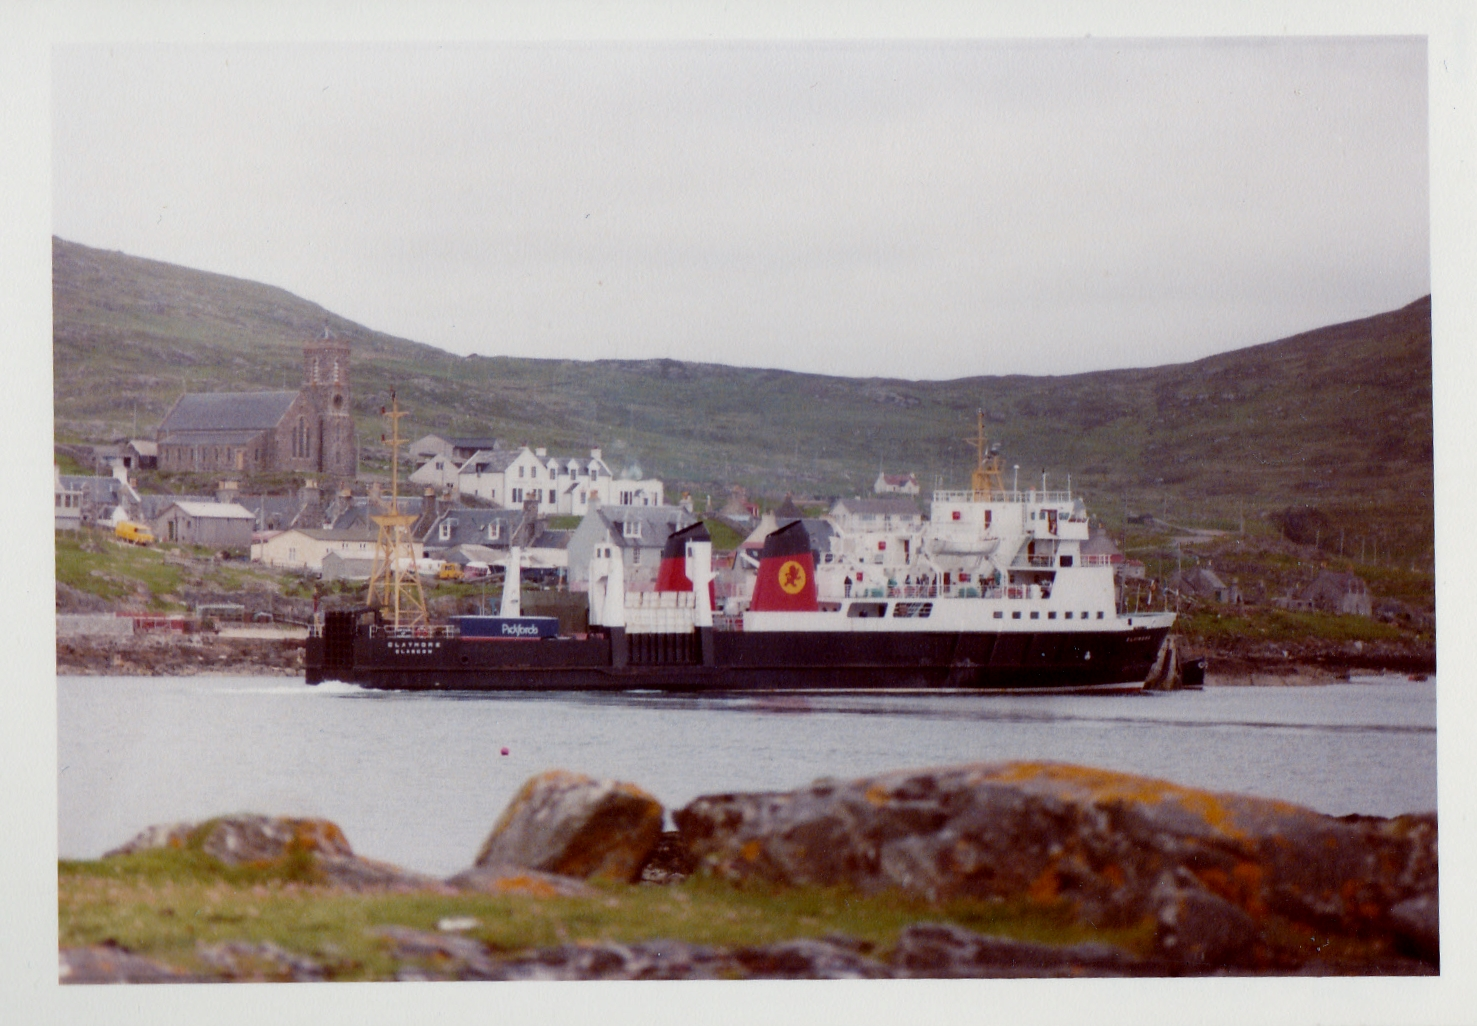 Claymore arriving at Castlebay (Jim Aikman Smith)